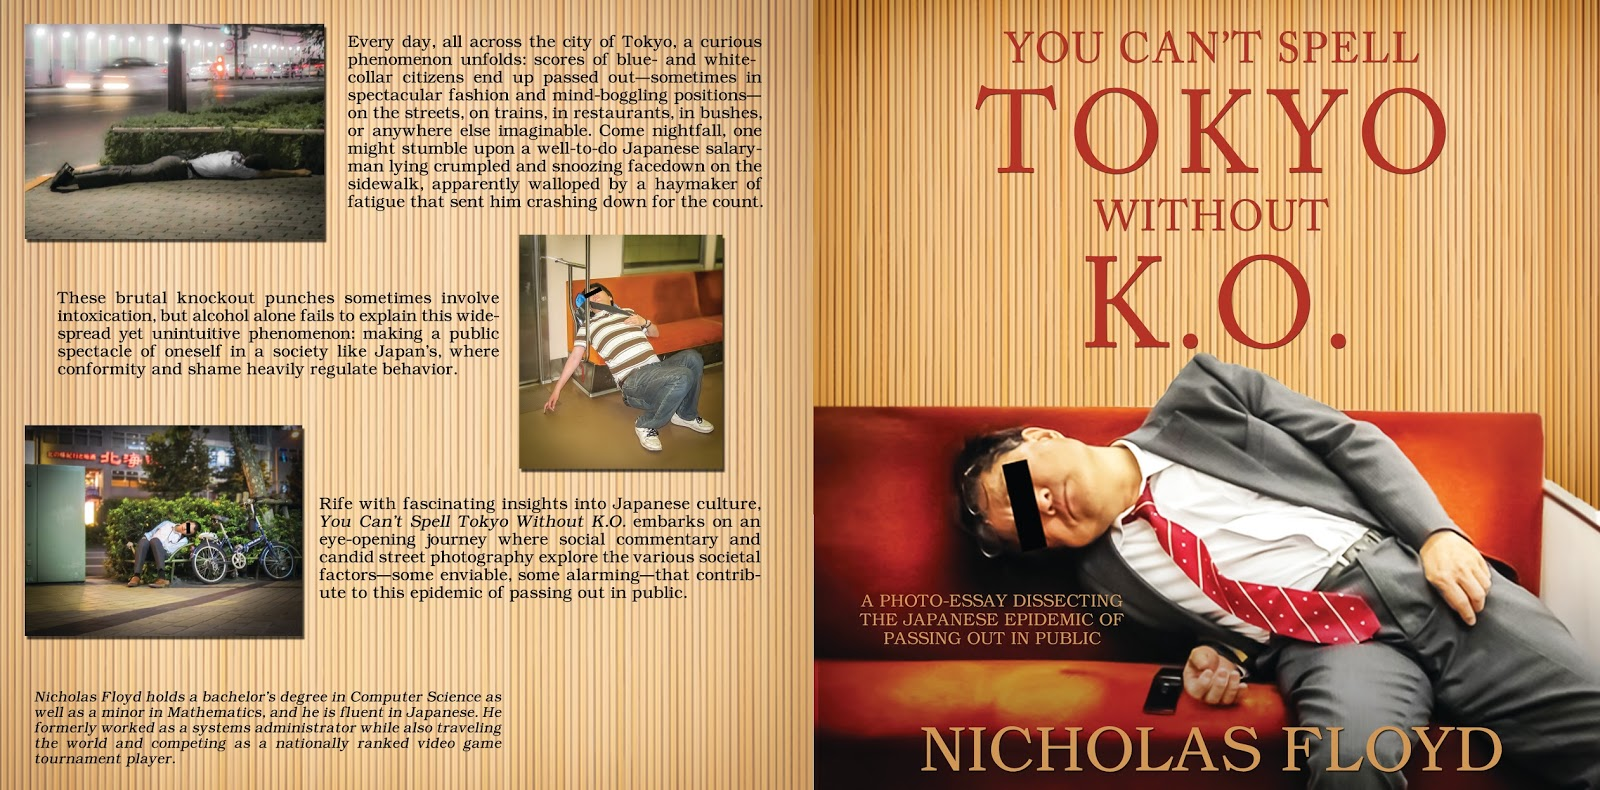 historical editorial new cover design you can t spell tokyo please join me in congratulating nicholas floyd on the publication of his second nonfiction book you can t spell tokyo out k o a photo essay